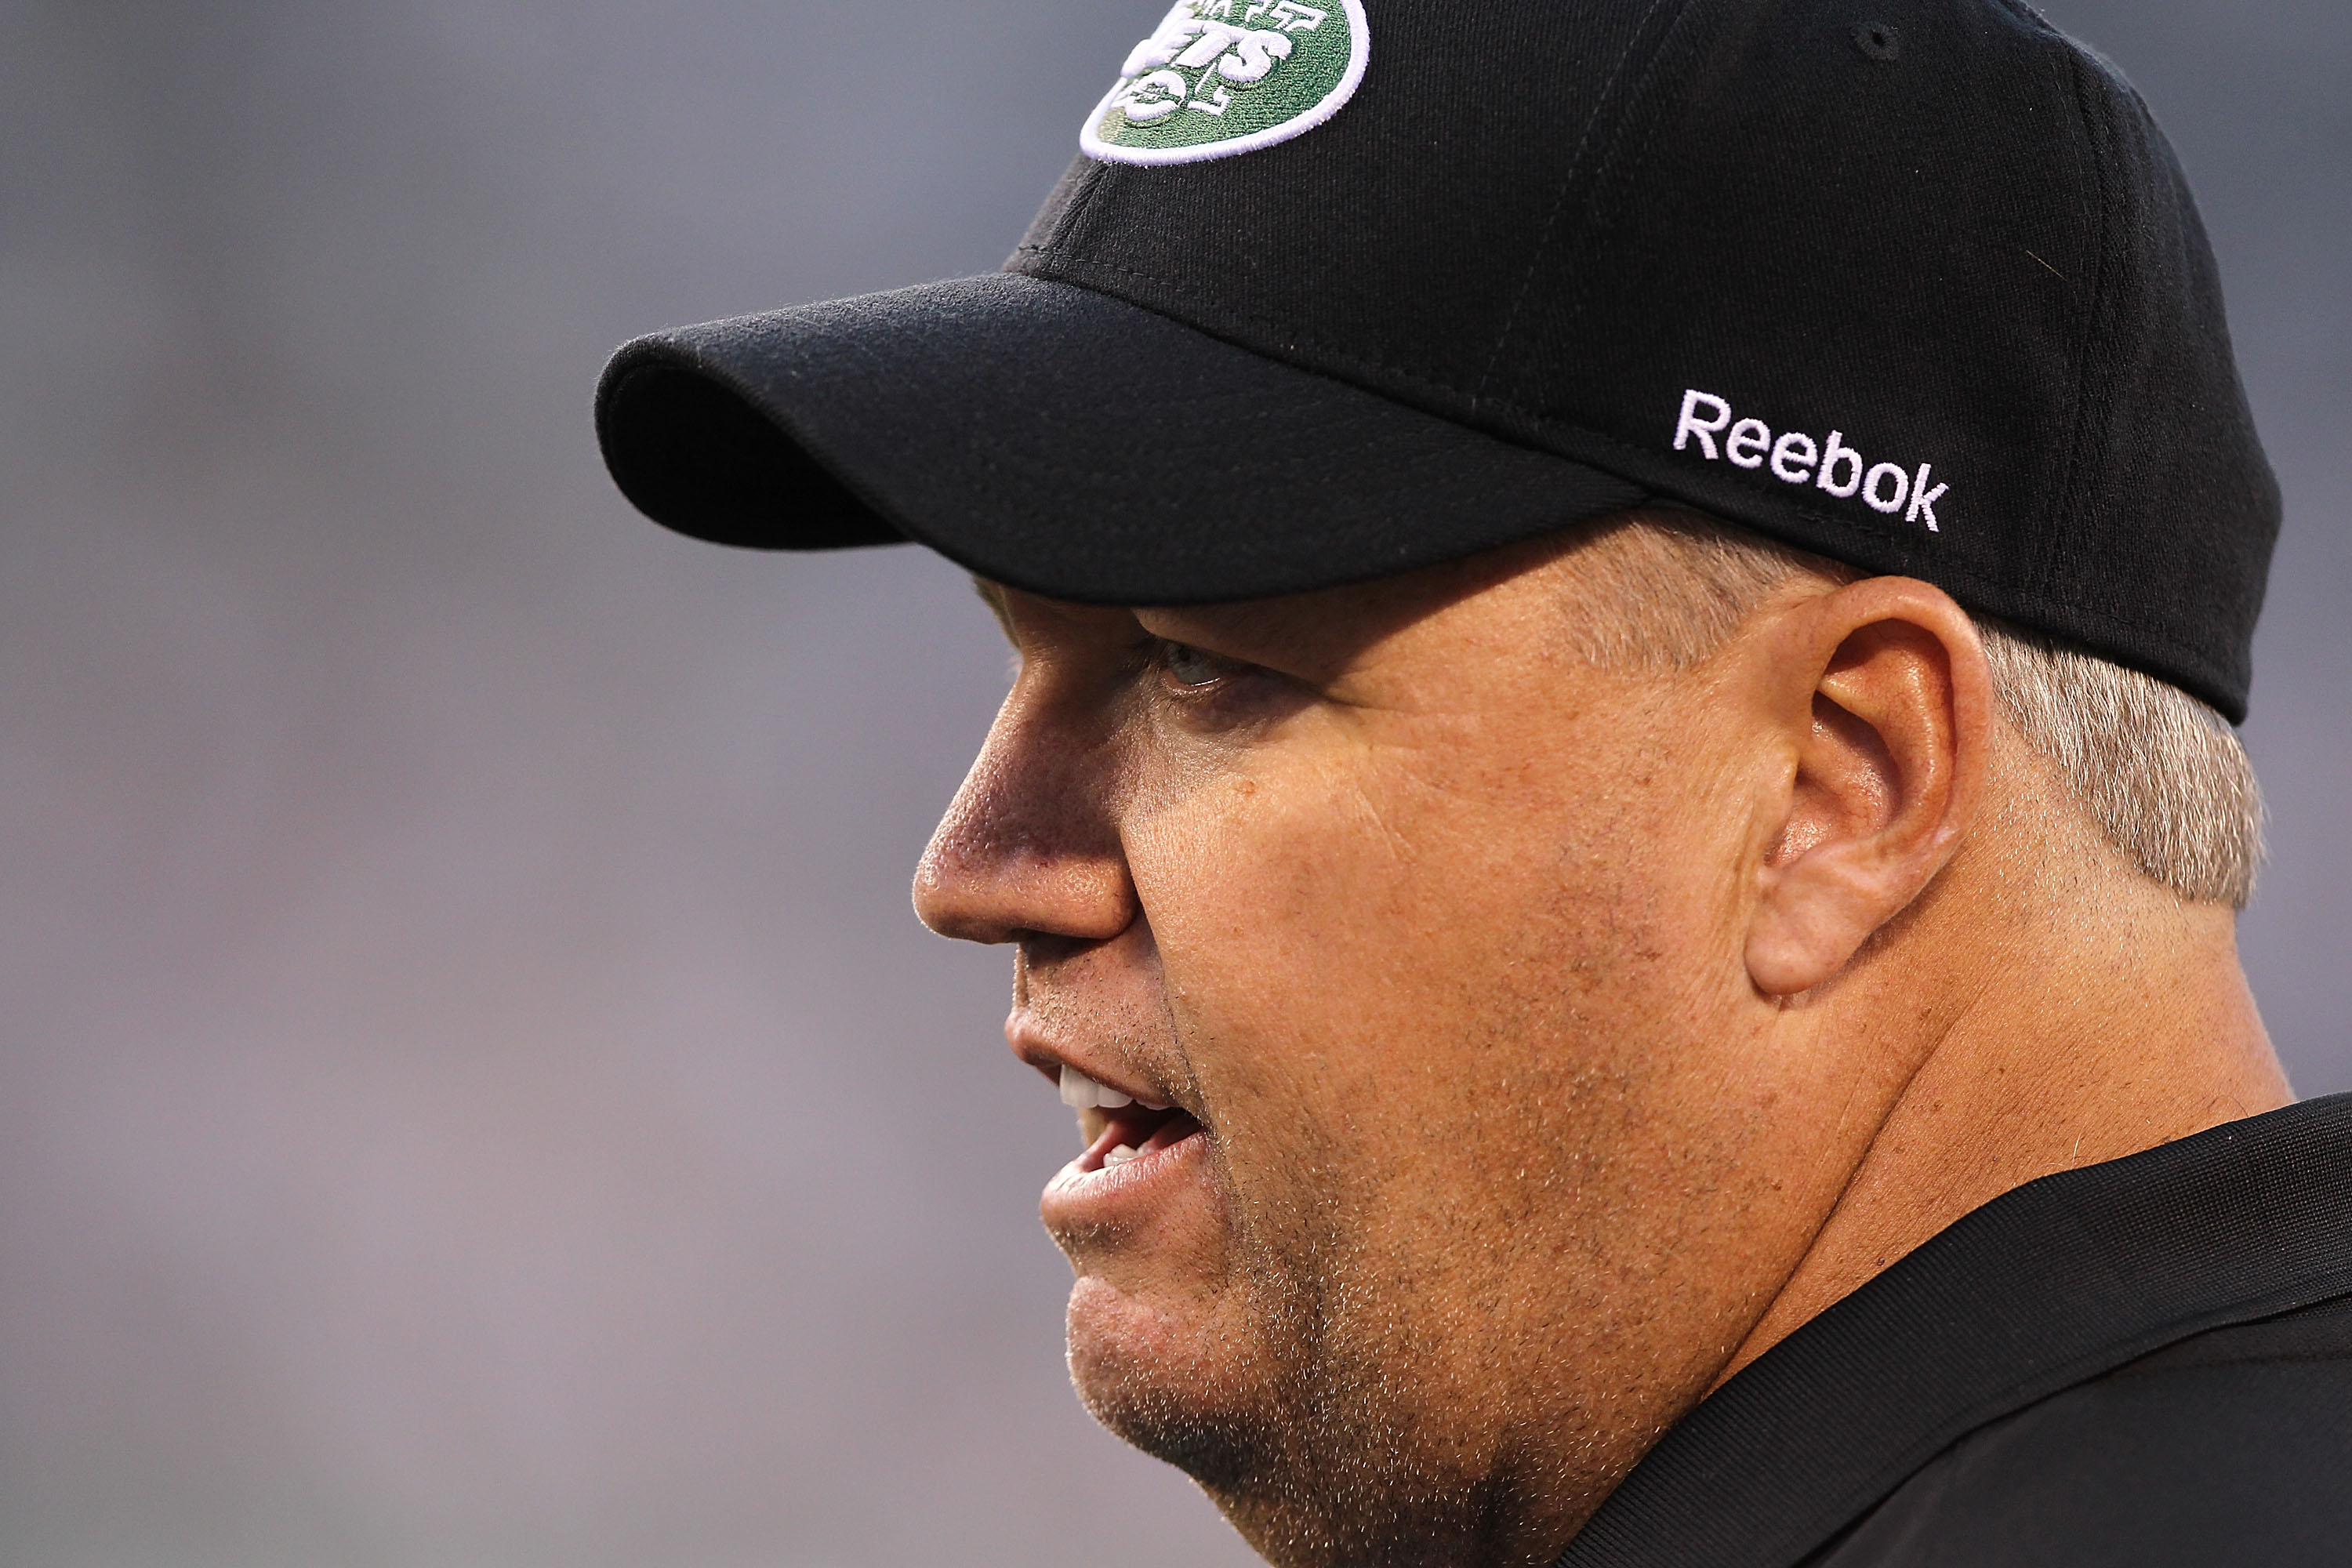 EAST RUTHERFORD, NJ - AUGUST 27:  Rex Ryan, Head Coach of the New York Jets looks on during the preseason game against the Washington Redskins on August 27, 2010 at the New Meadowlands Stadium  in East Rutherford, New Jersey.  (Photo by Al Bello/Getty Ima